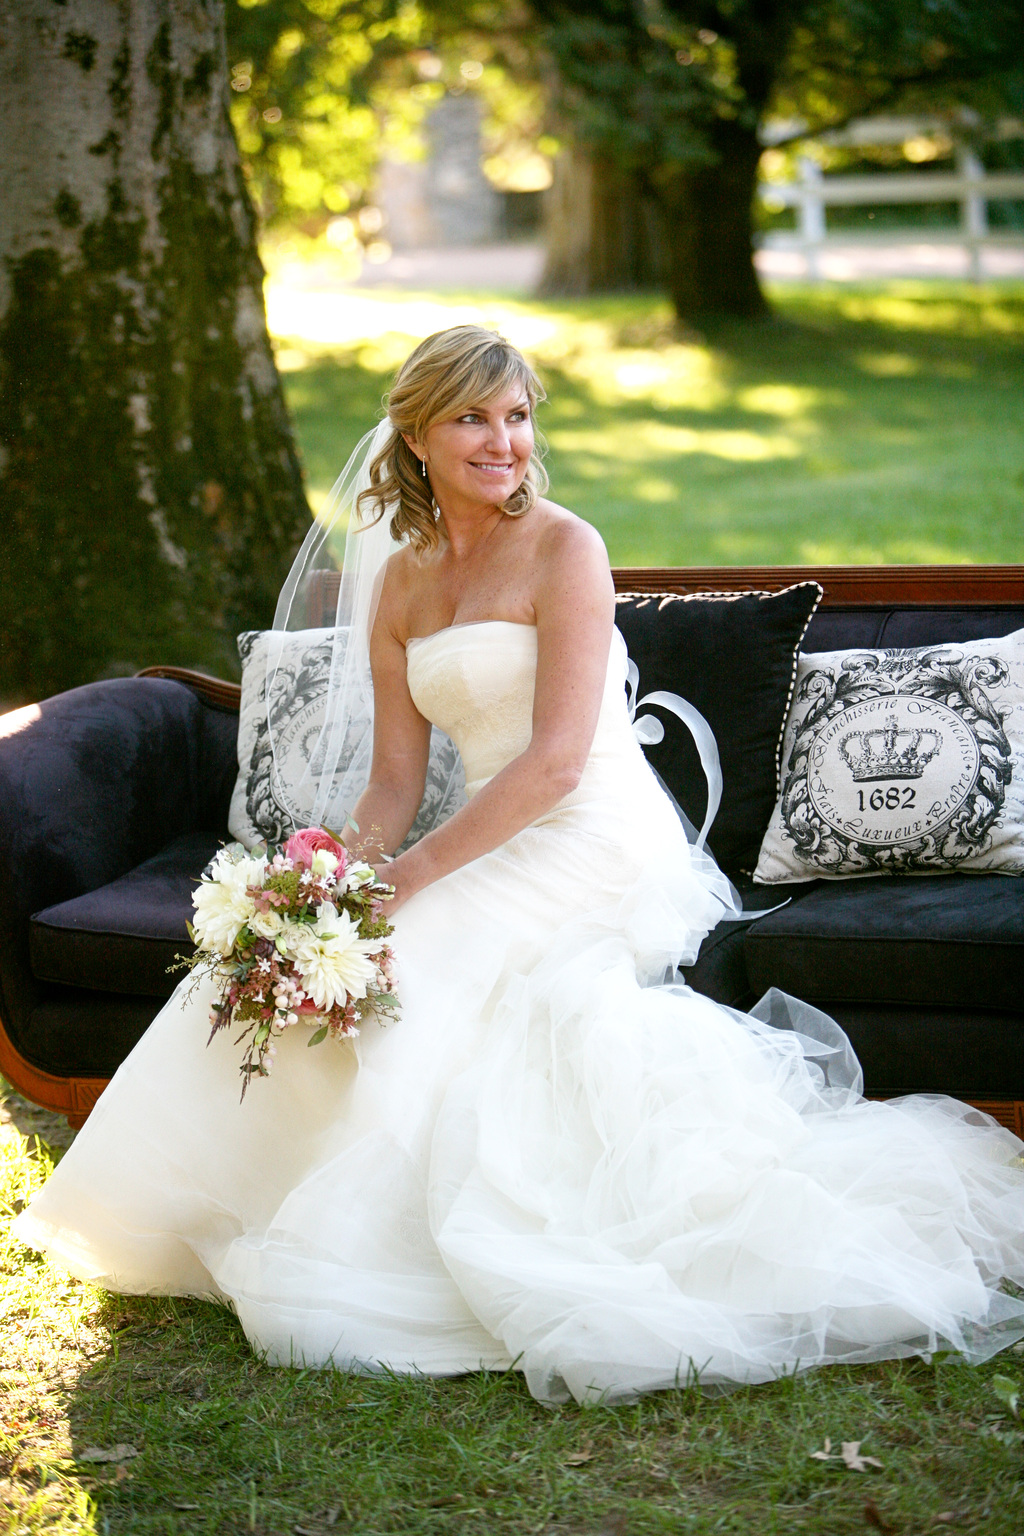 Southern bride poses outdoors on vintage couch